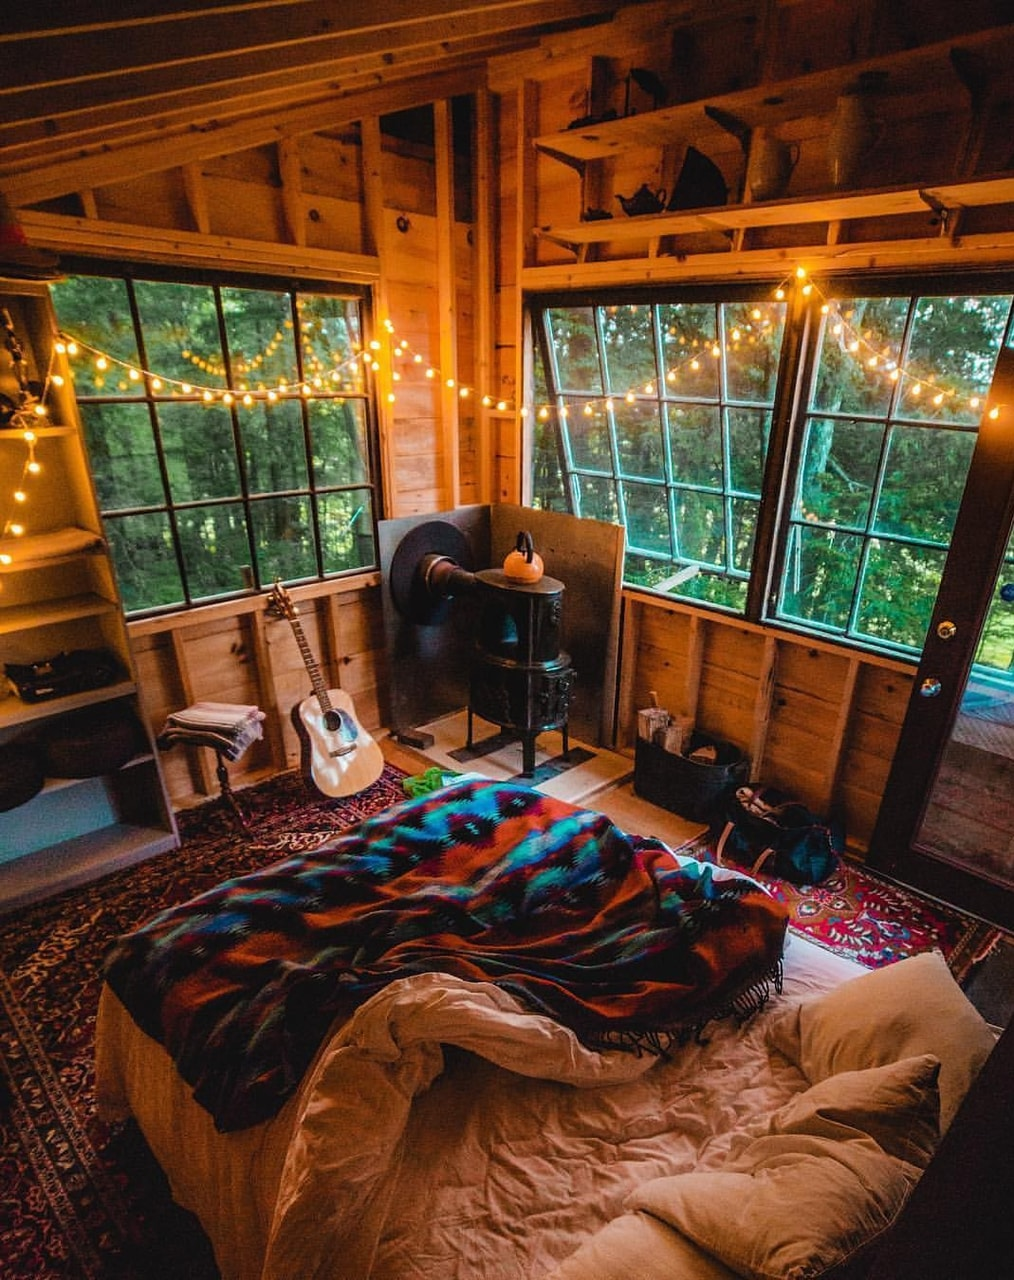 hippie life, hippie, comfy and home